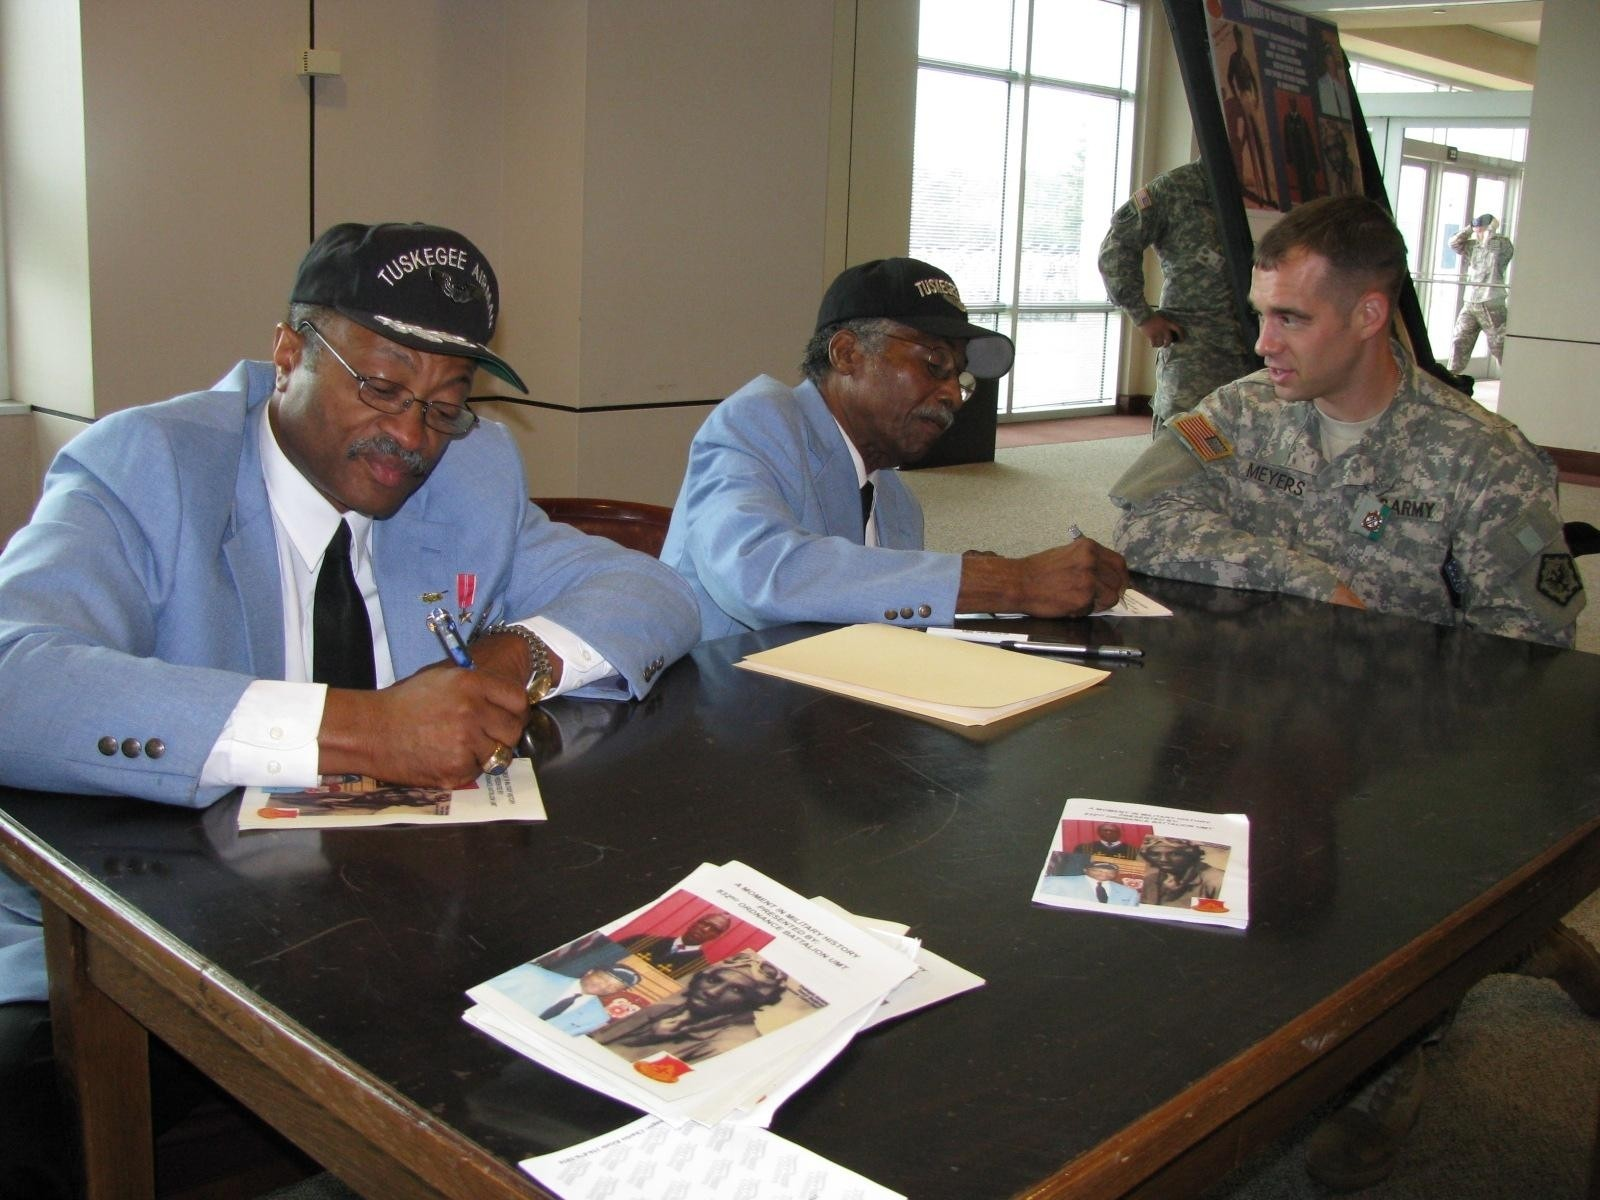 Tuskegee Airman Looks to Today's Soldiers | Article | The United